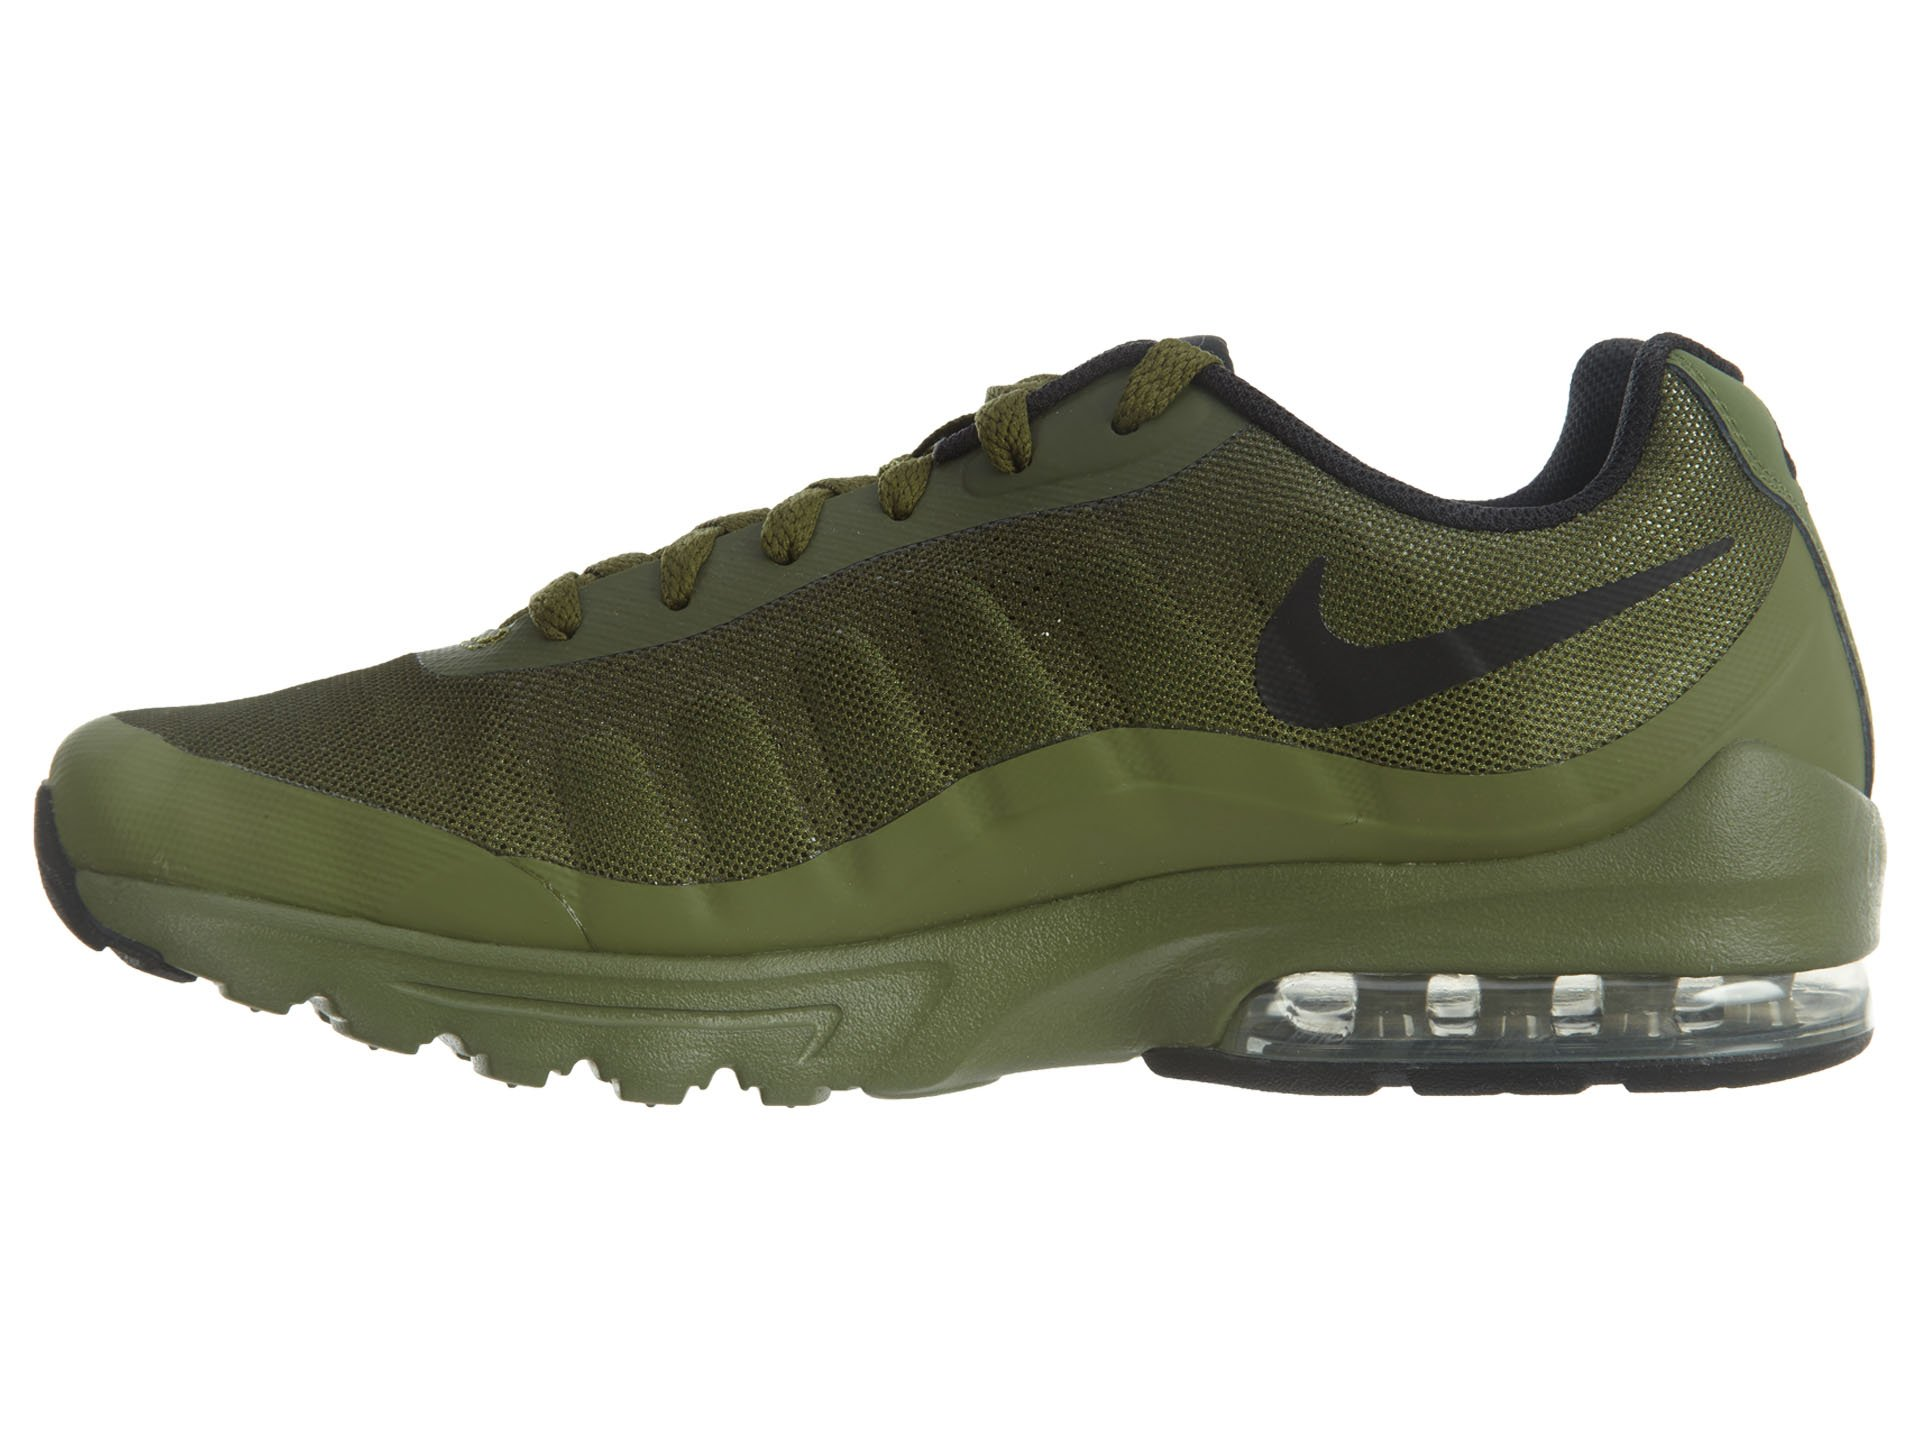 e4eabaf610 ... cheap nike mens air max invigor print palm green black legion green  running shoe 10.5 men